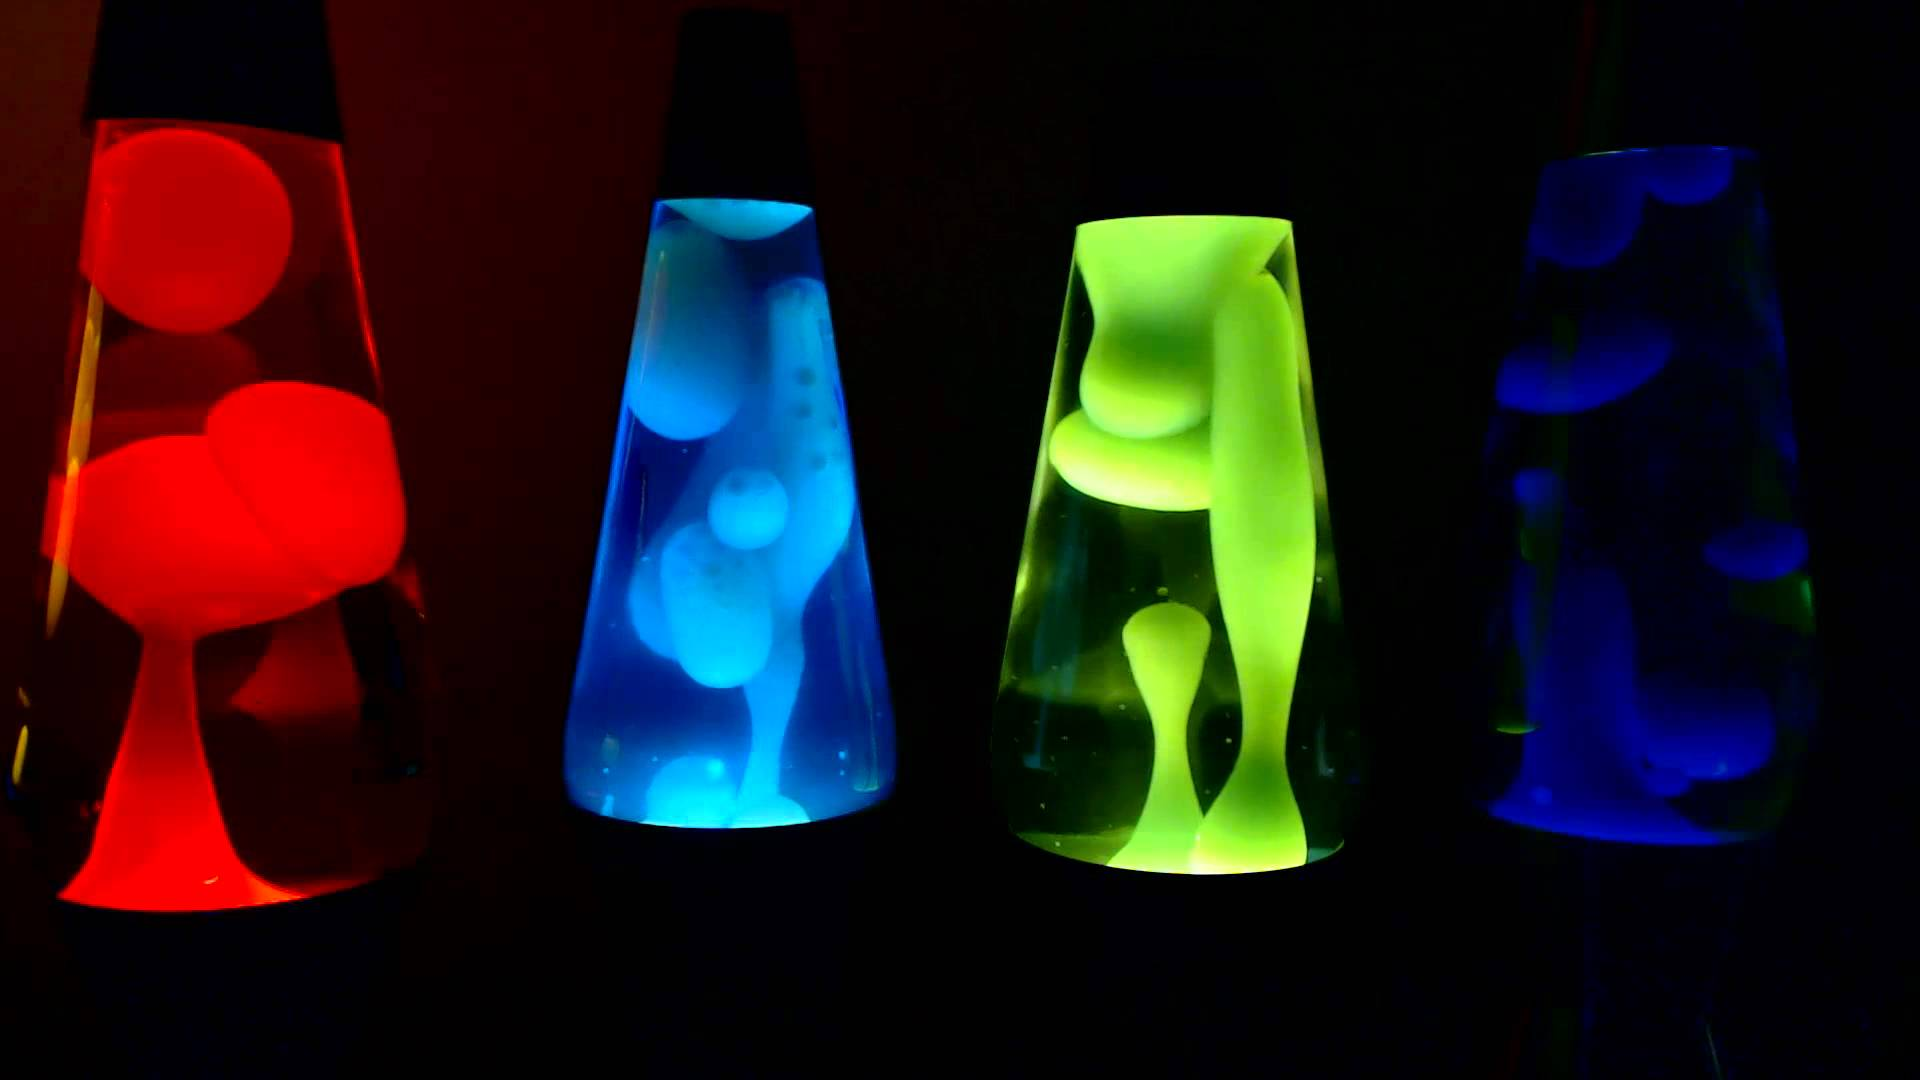 Lava lamp wallpaper hd